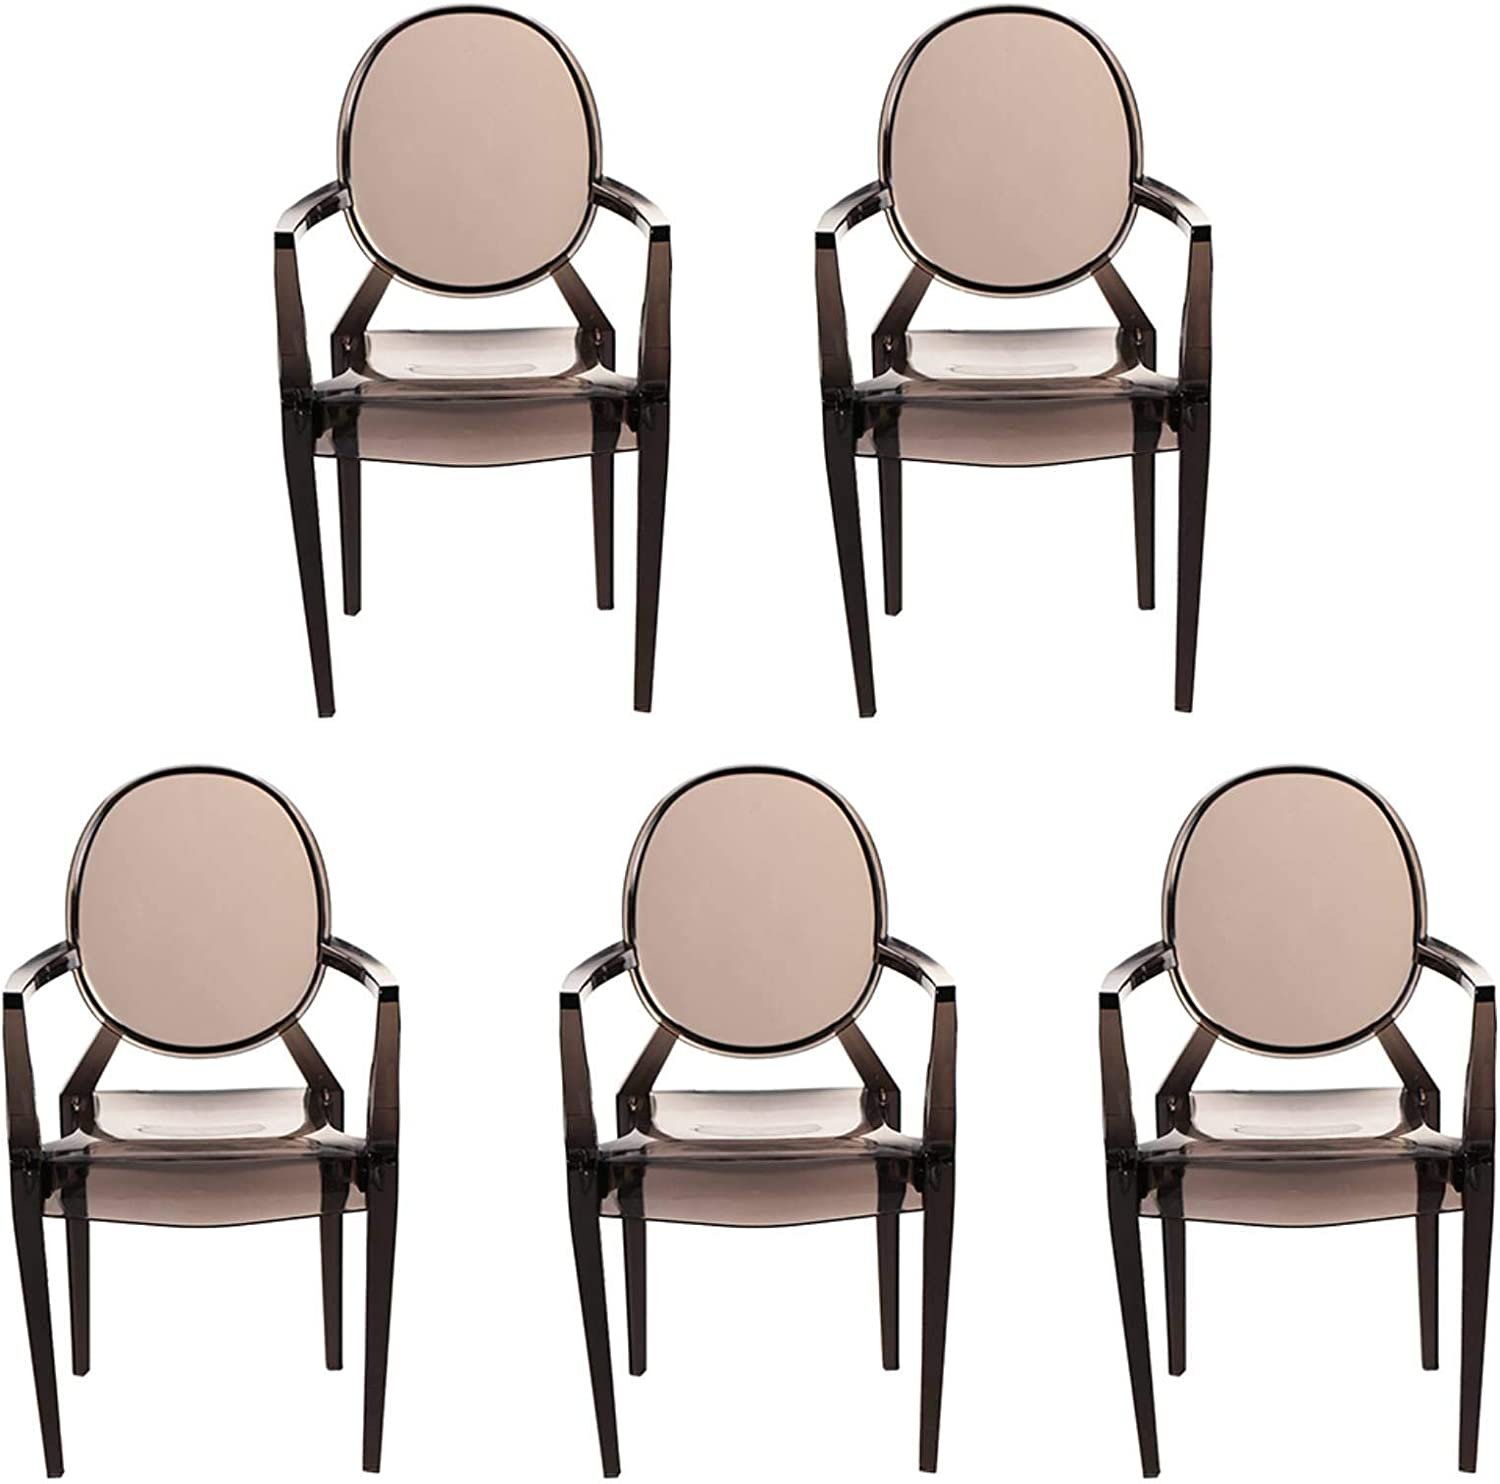 Tmtop 5PCS Miniature Armchair Plastic Chair Model Furniture for 1/6 Doll House Accessories Gray